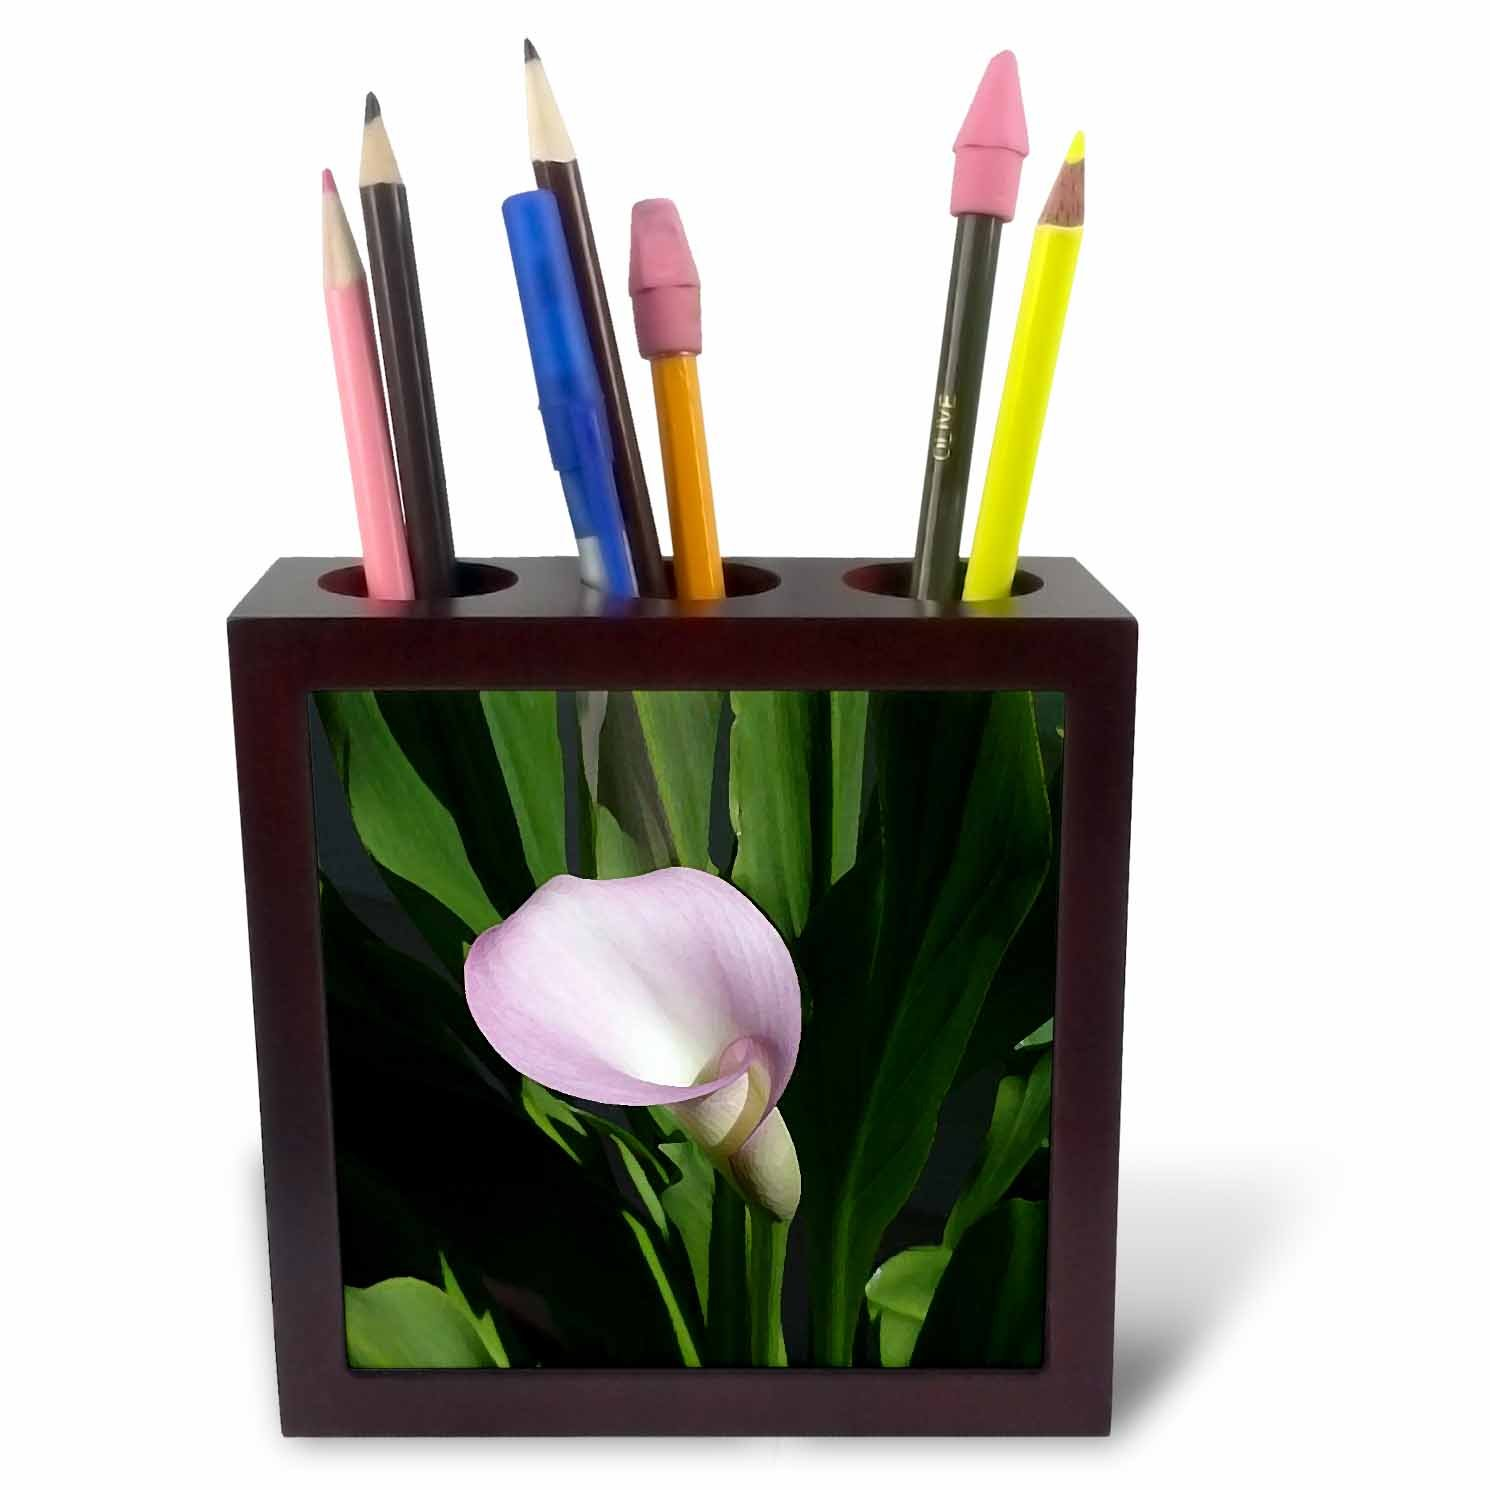 3dRose ph_4273_1 Pink Calla Lily Tile Pen Holder, 5-Inch by 3dRose